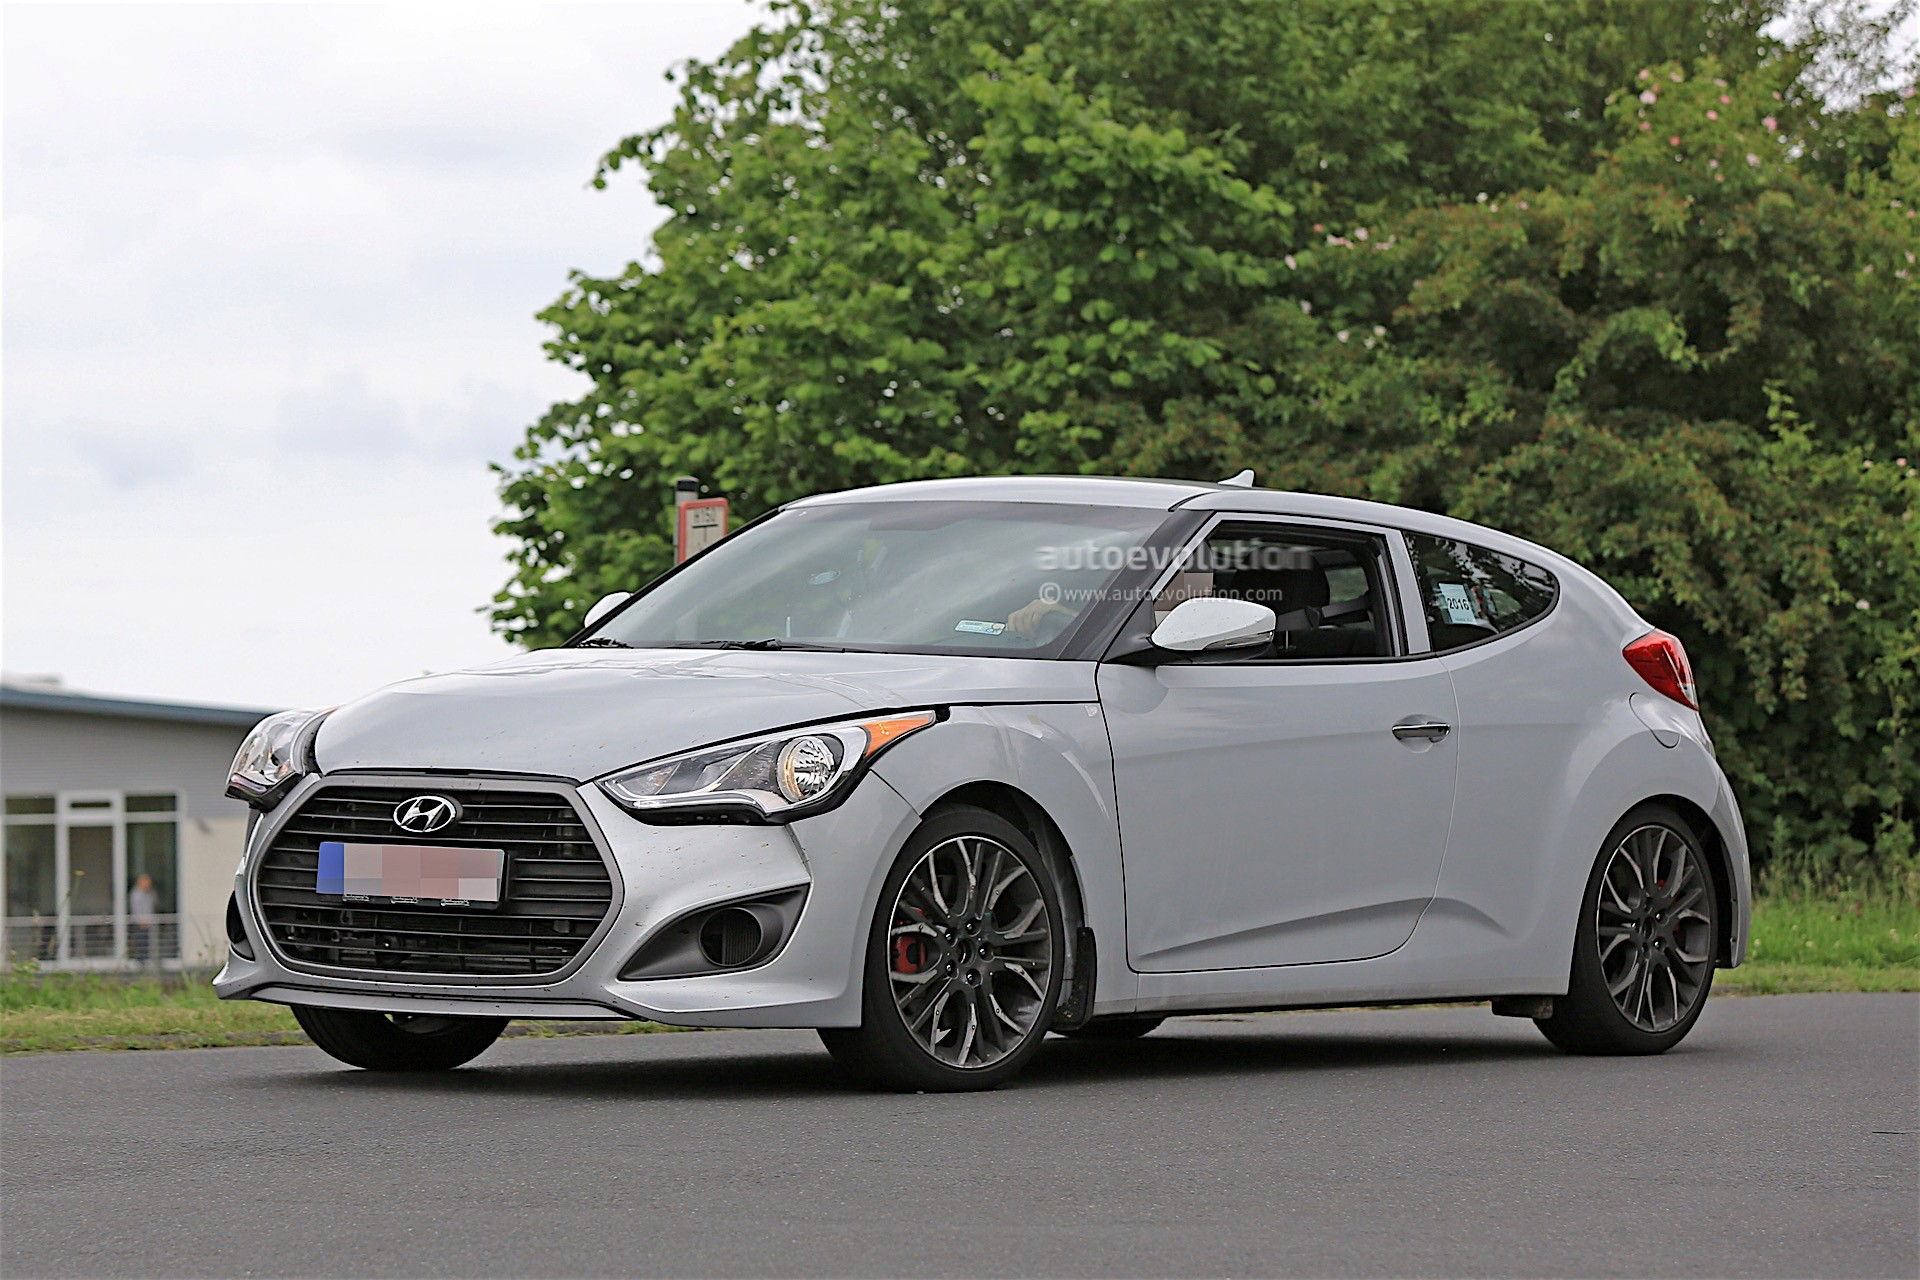 2018 Hyundai Veloster Spied Could Get Independent Rear Suspension